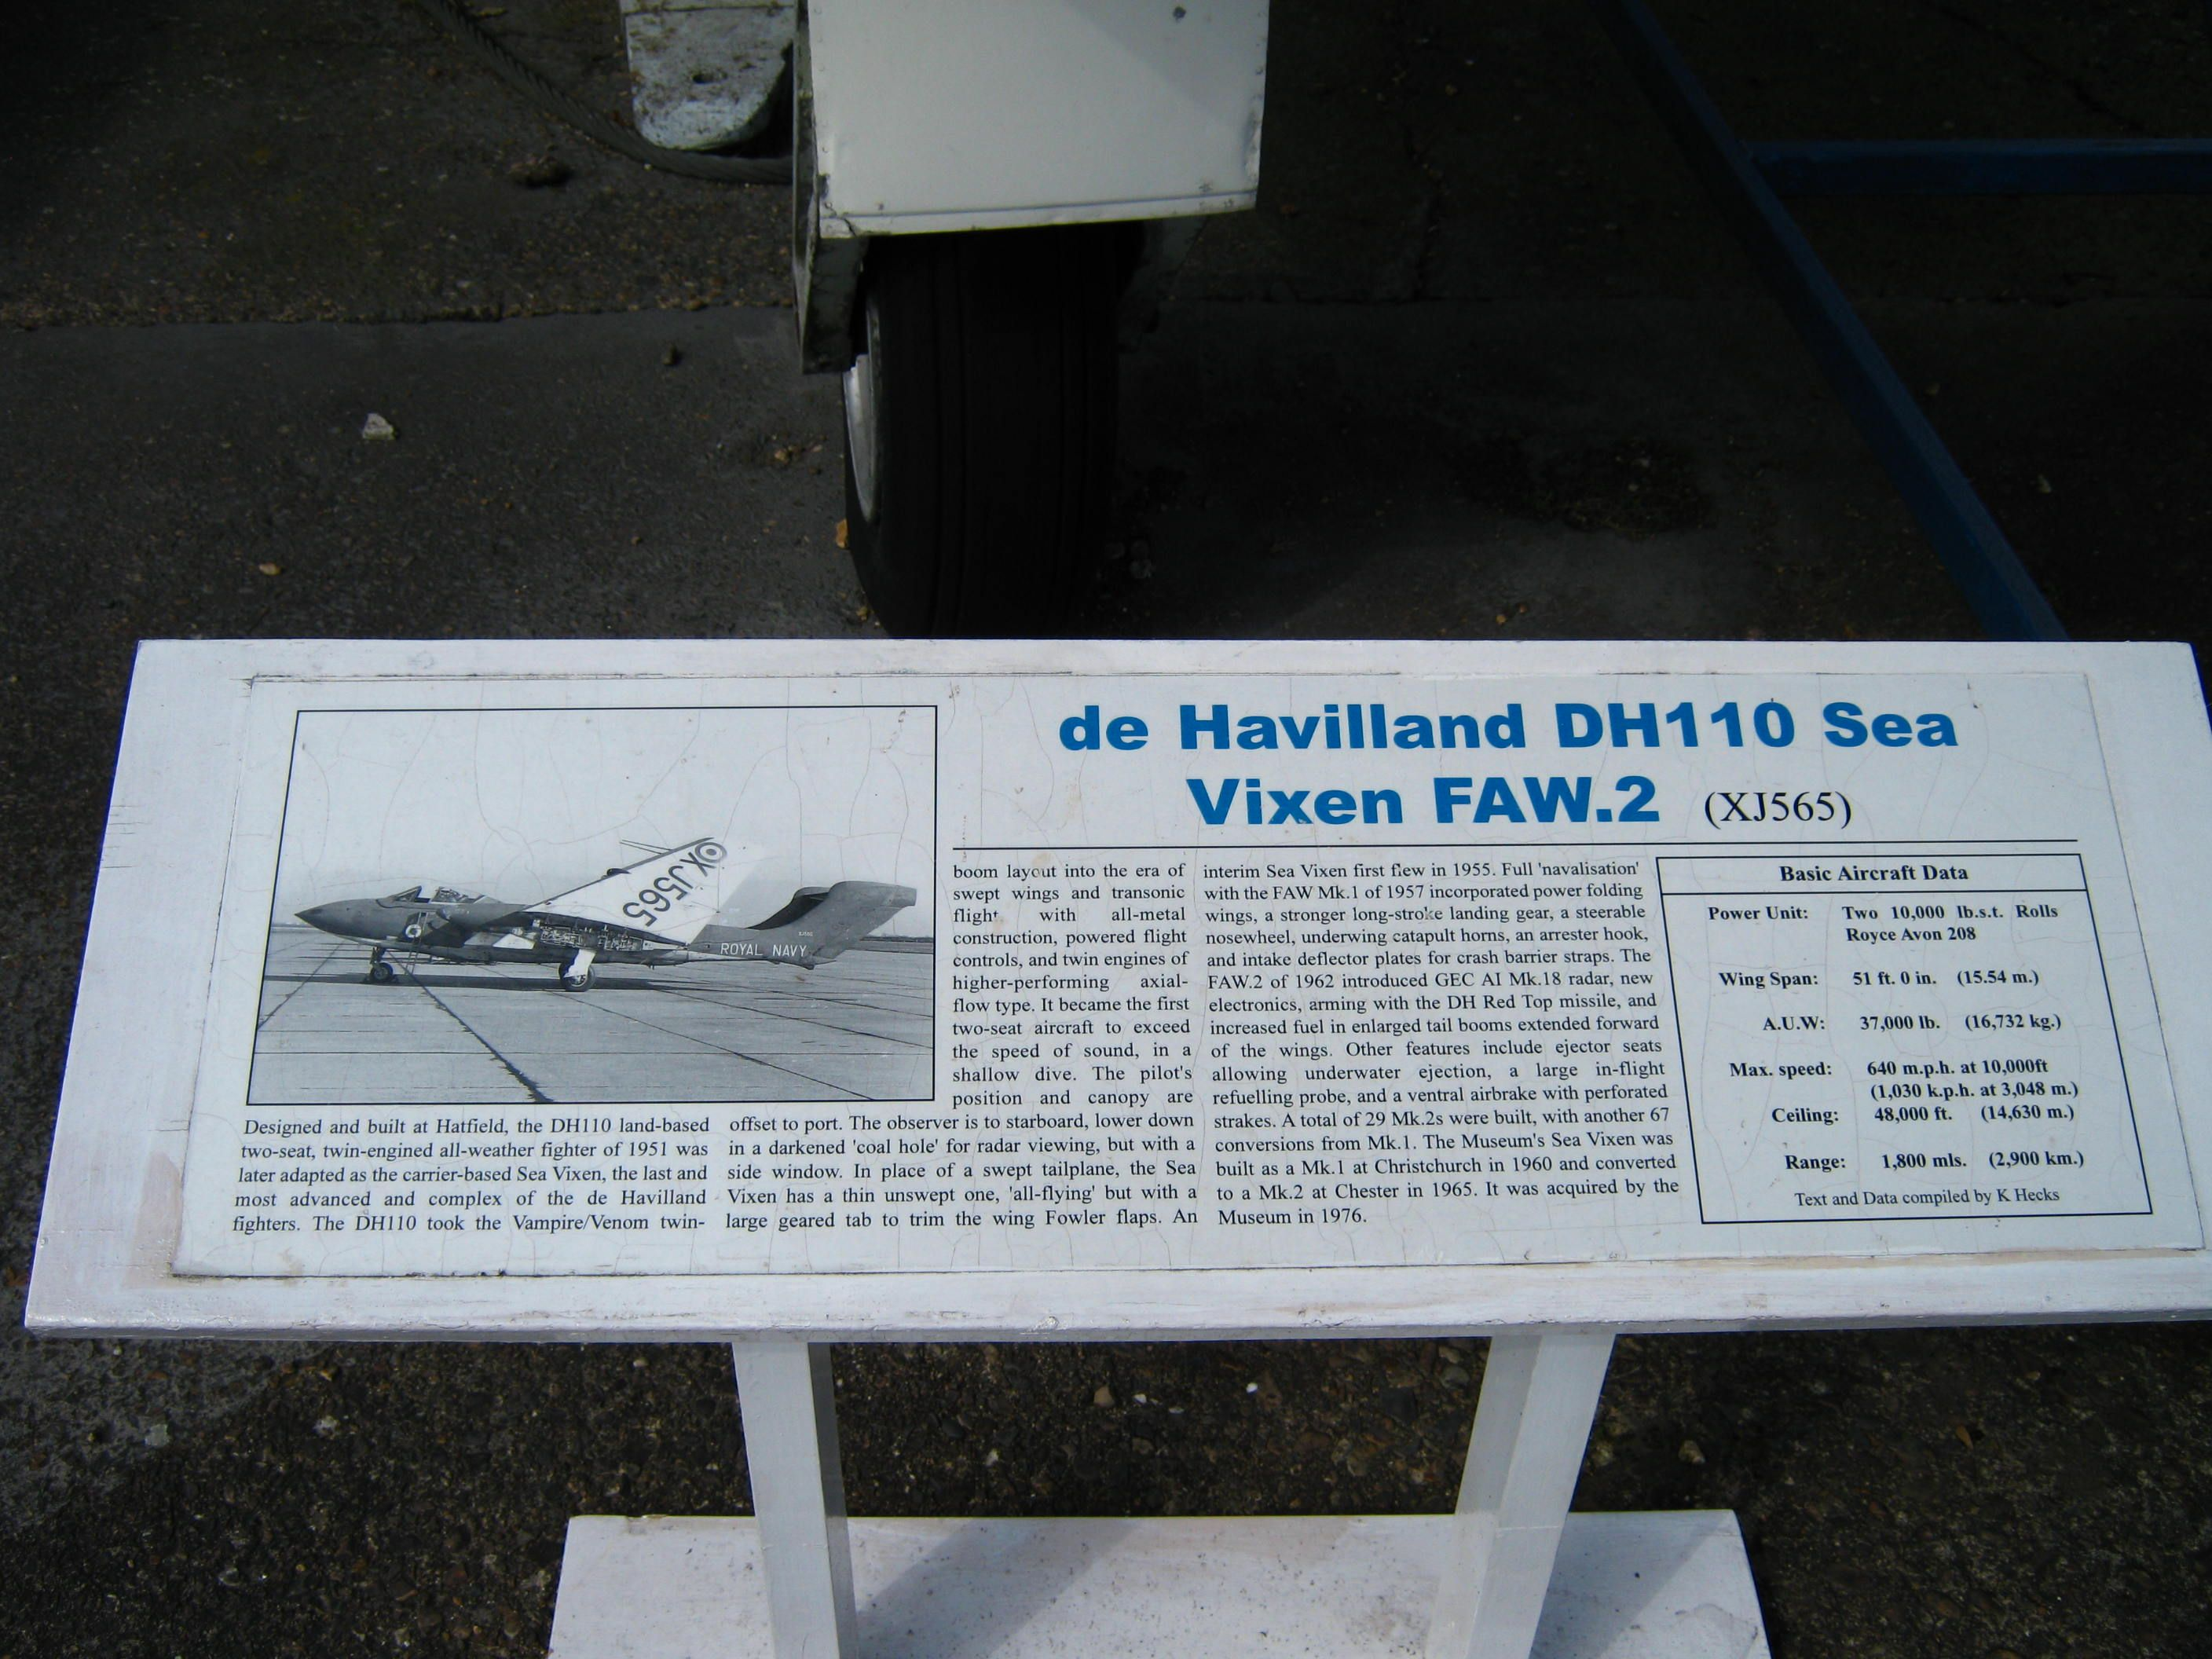 More about the Sea Vixen